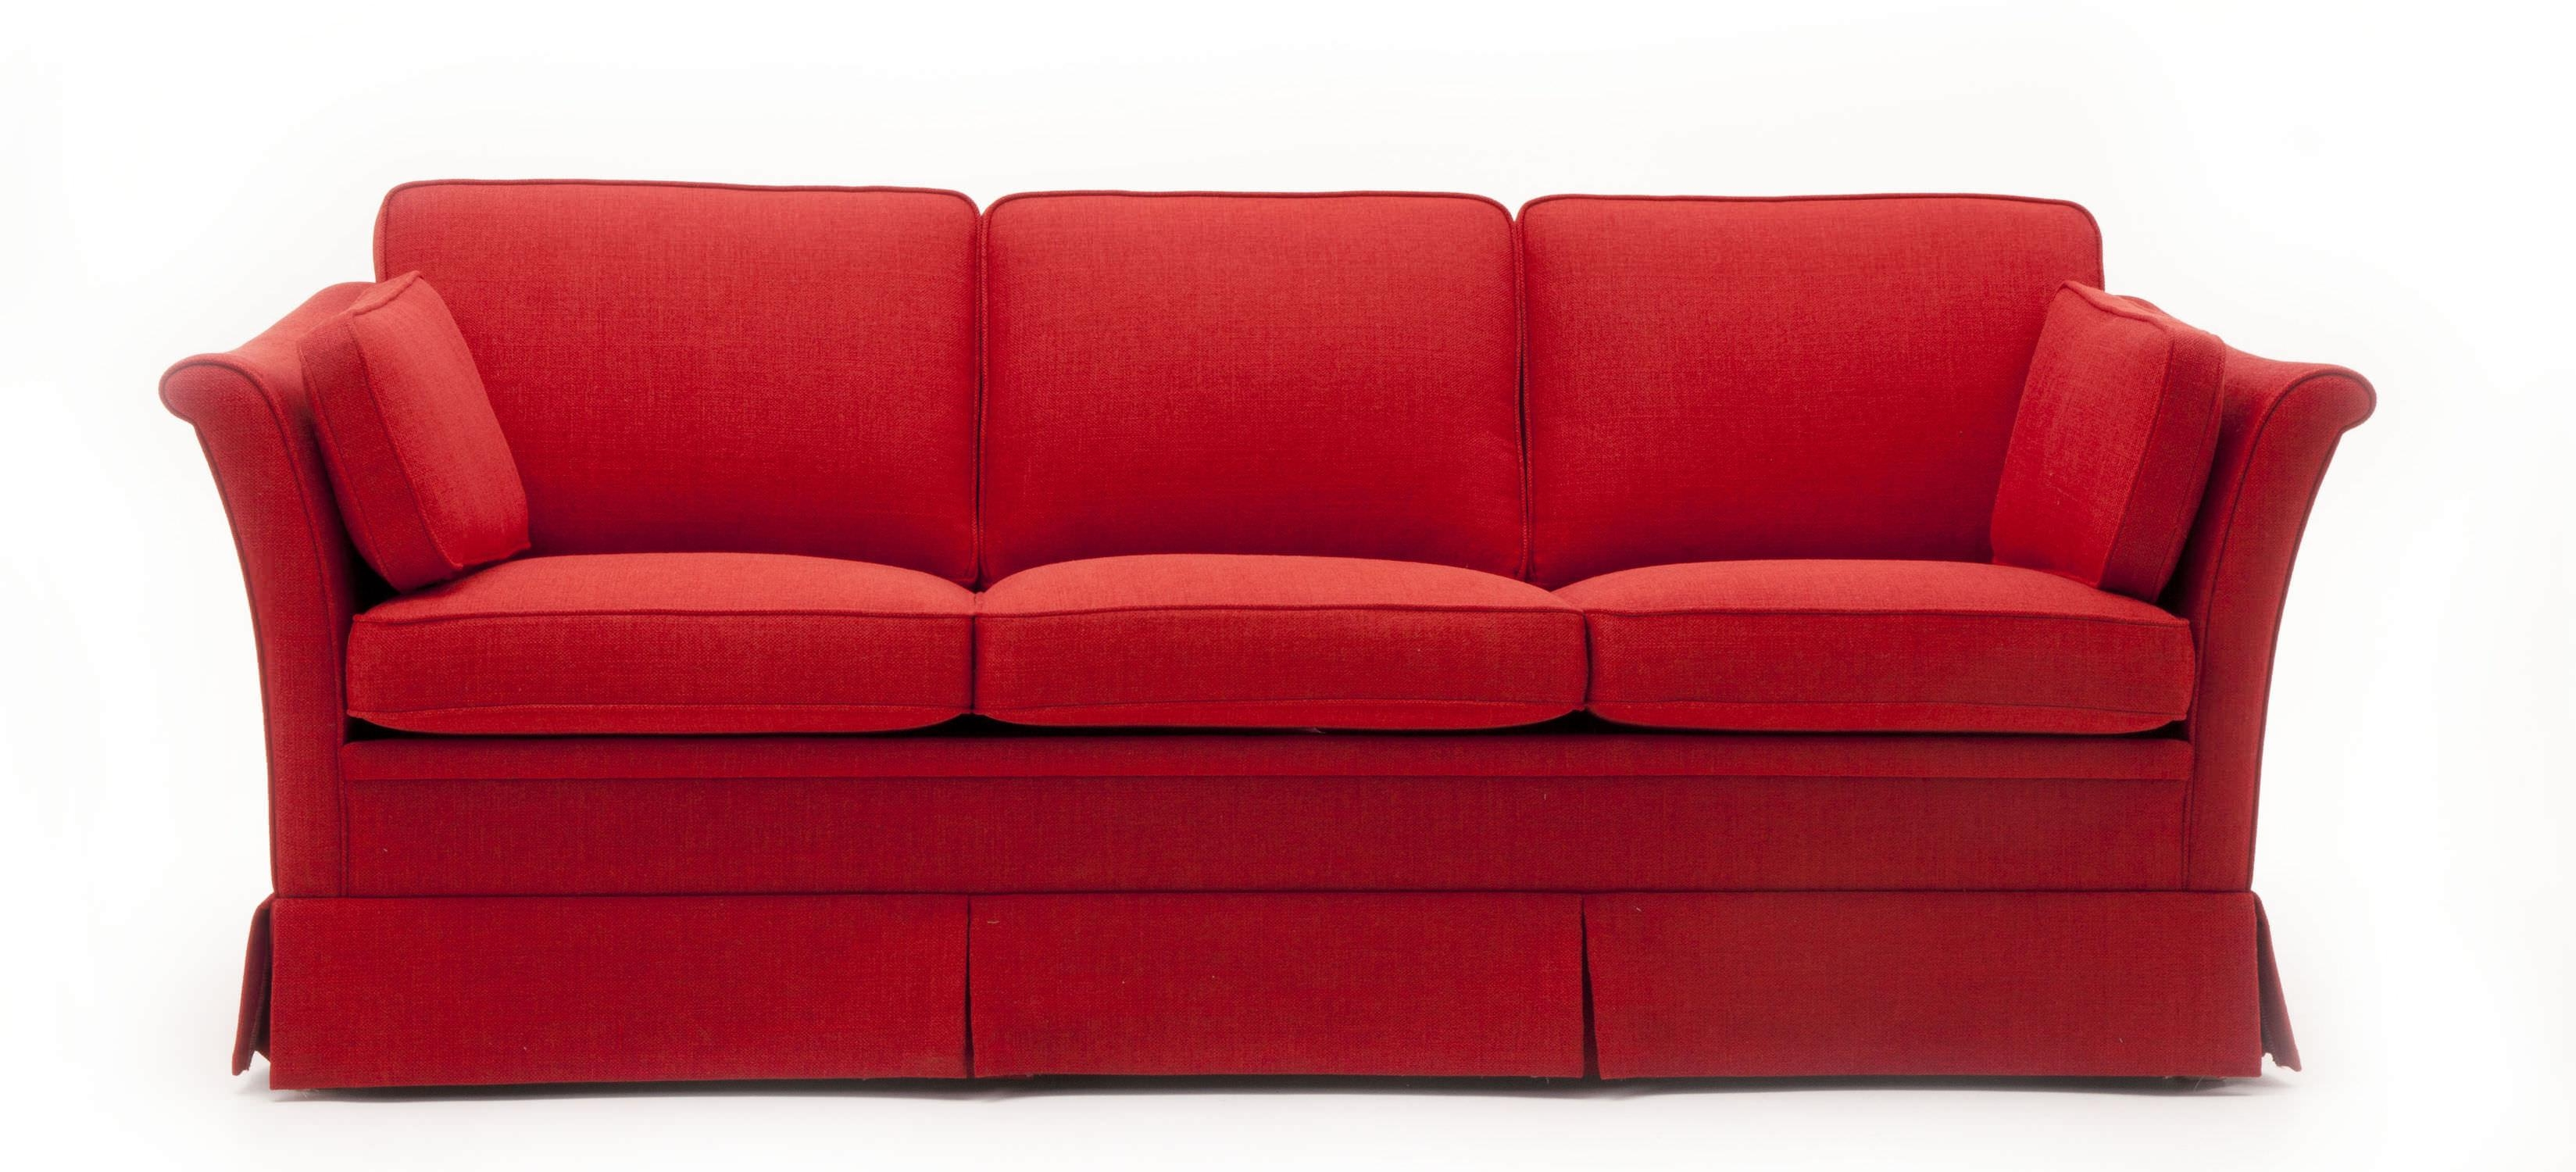 Traditional Sofa / Fabric / 3 Seater / With Removable Cover Pertaining To Sofas With Removable Covers (View 7 of 20)